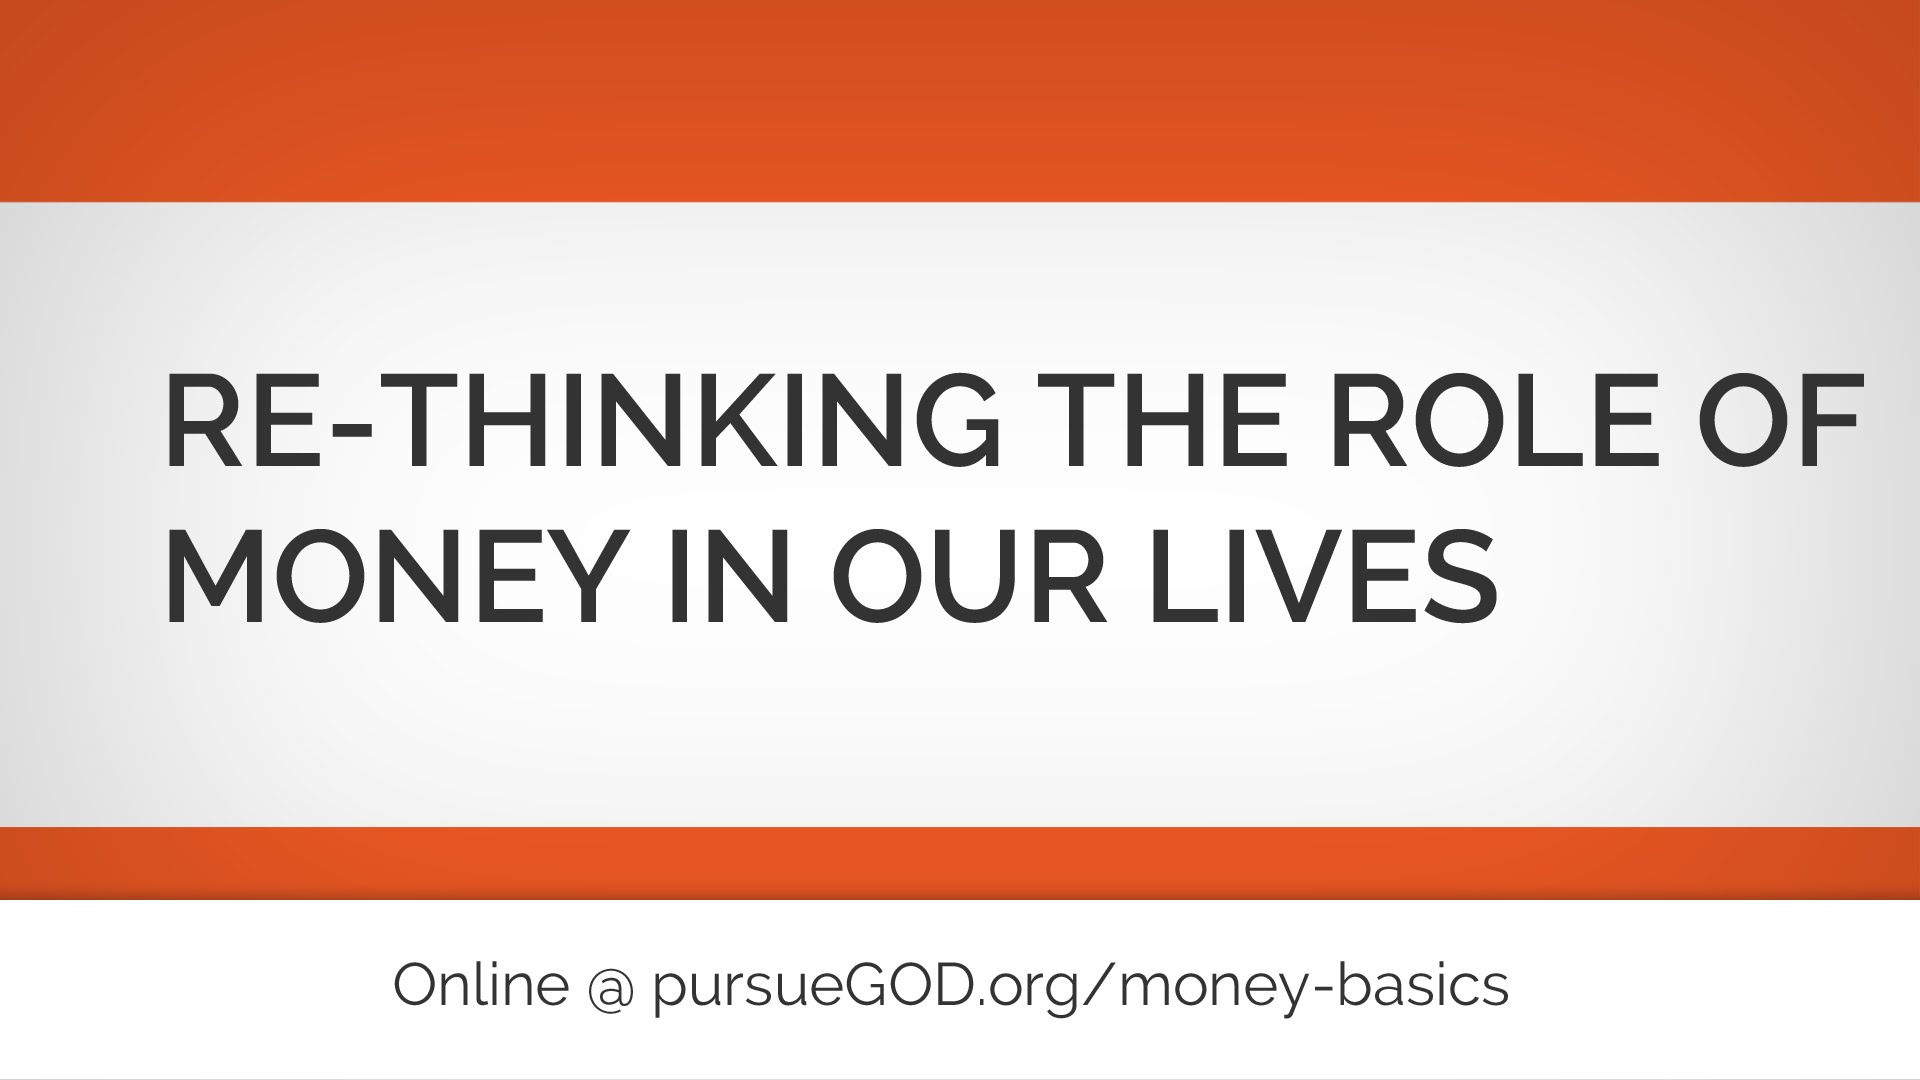 Money Basics: Re-thinking the Role of Money in Our Lives